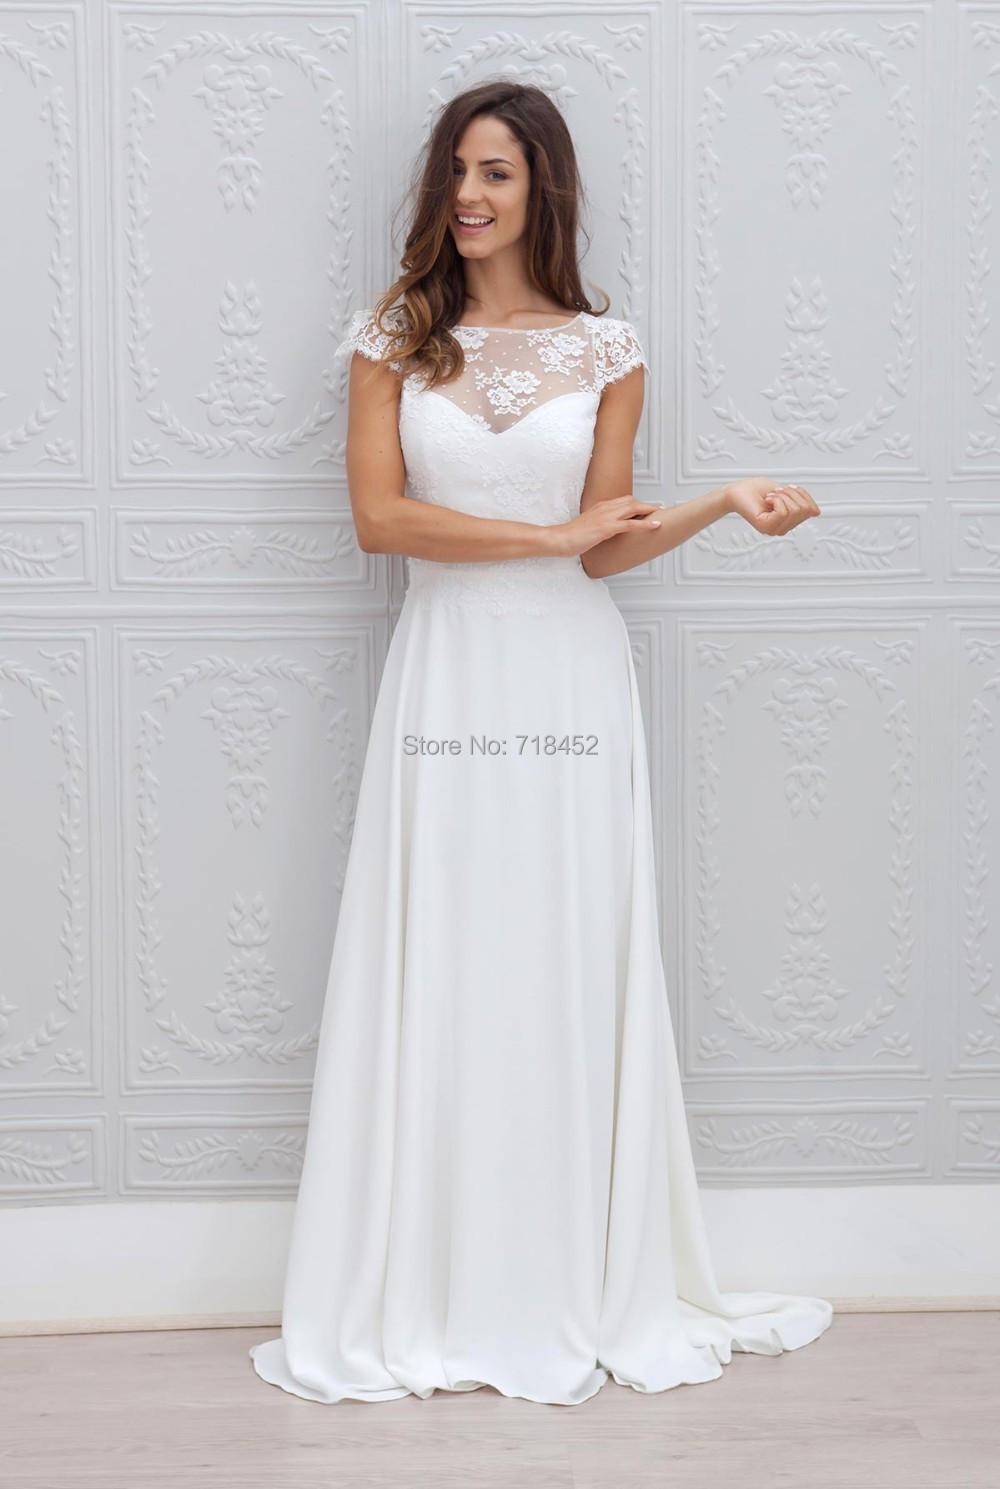 beach chiffon wedding dress real picture lace top bridal gowns short sleeve keyhole back sheer neck